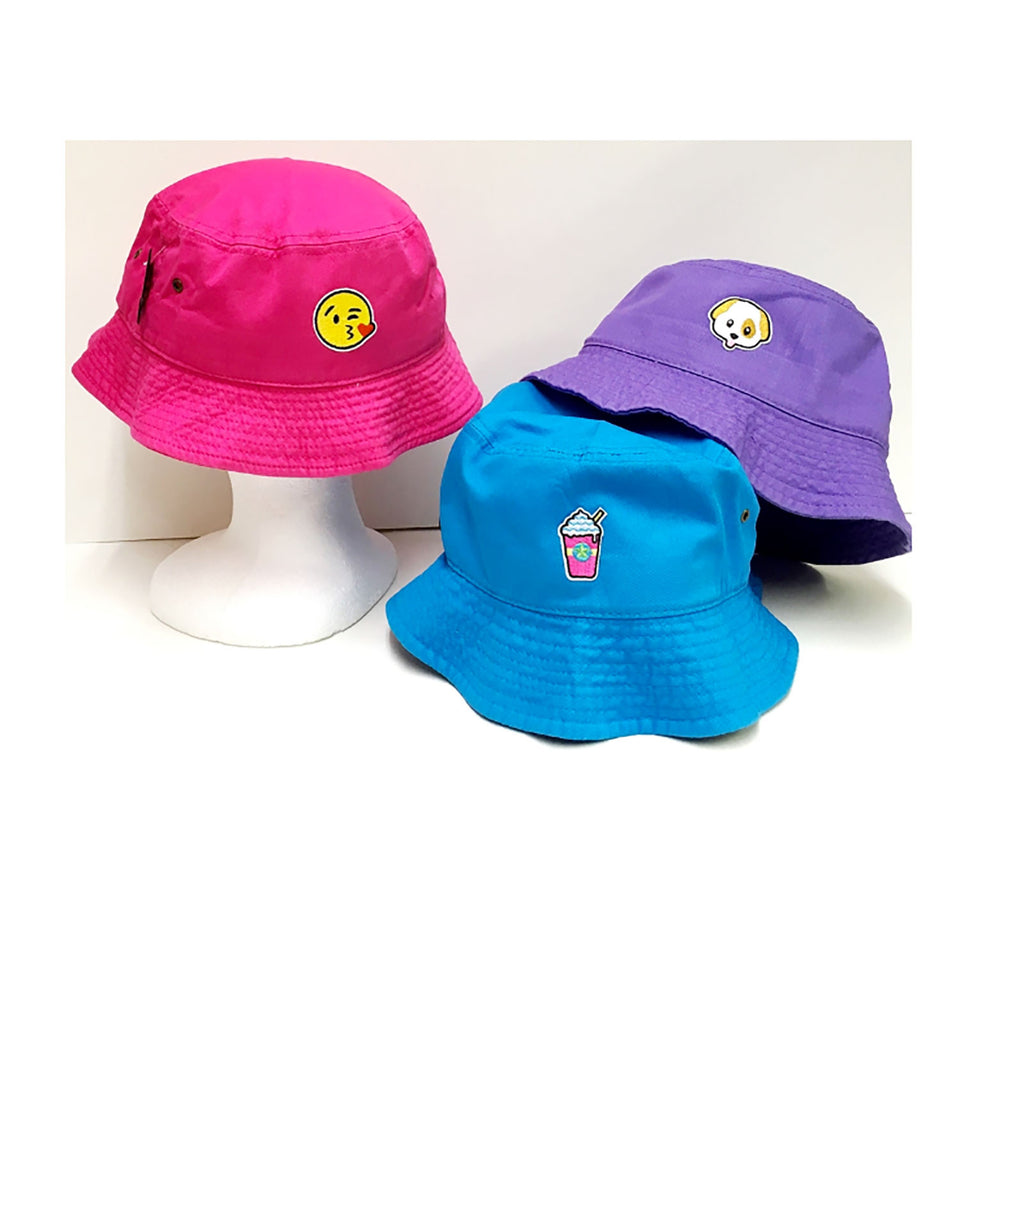 Confetti and Friends Bucket Hats - Frankie's on the Park